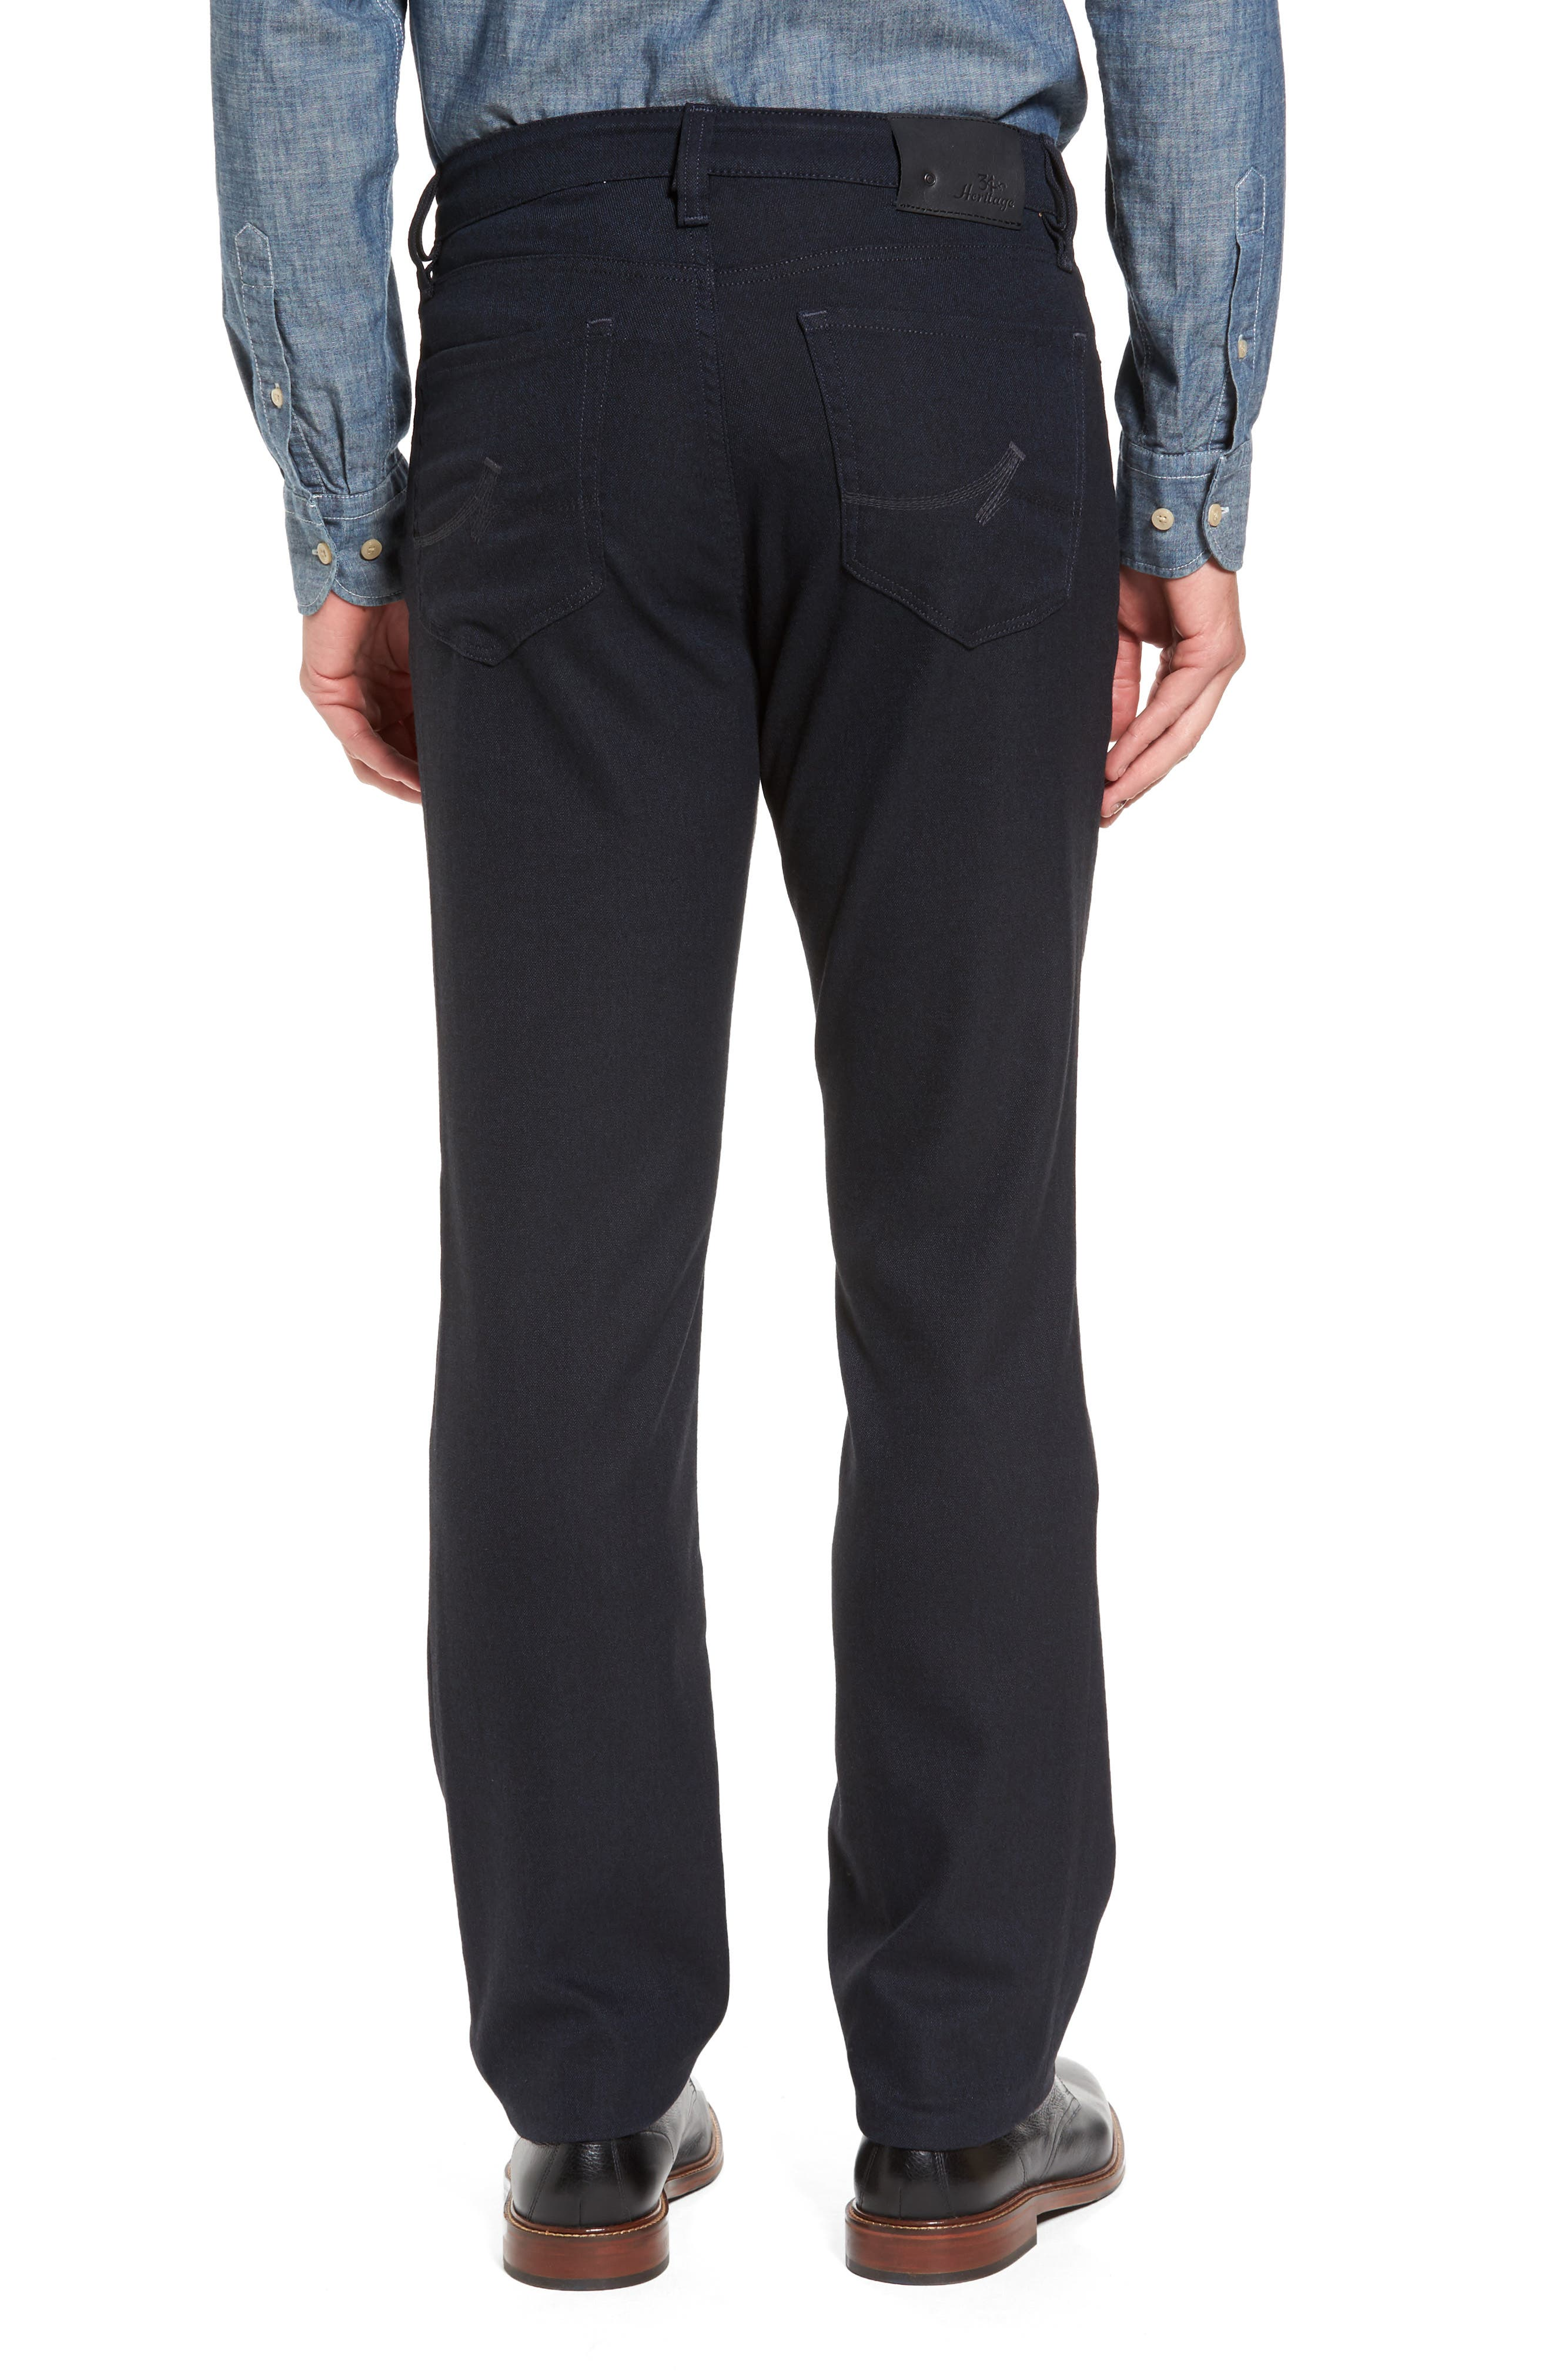 Charisma Relaxed Fit Jeans,                             Alternate thumbnail 2, color,                             401